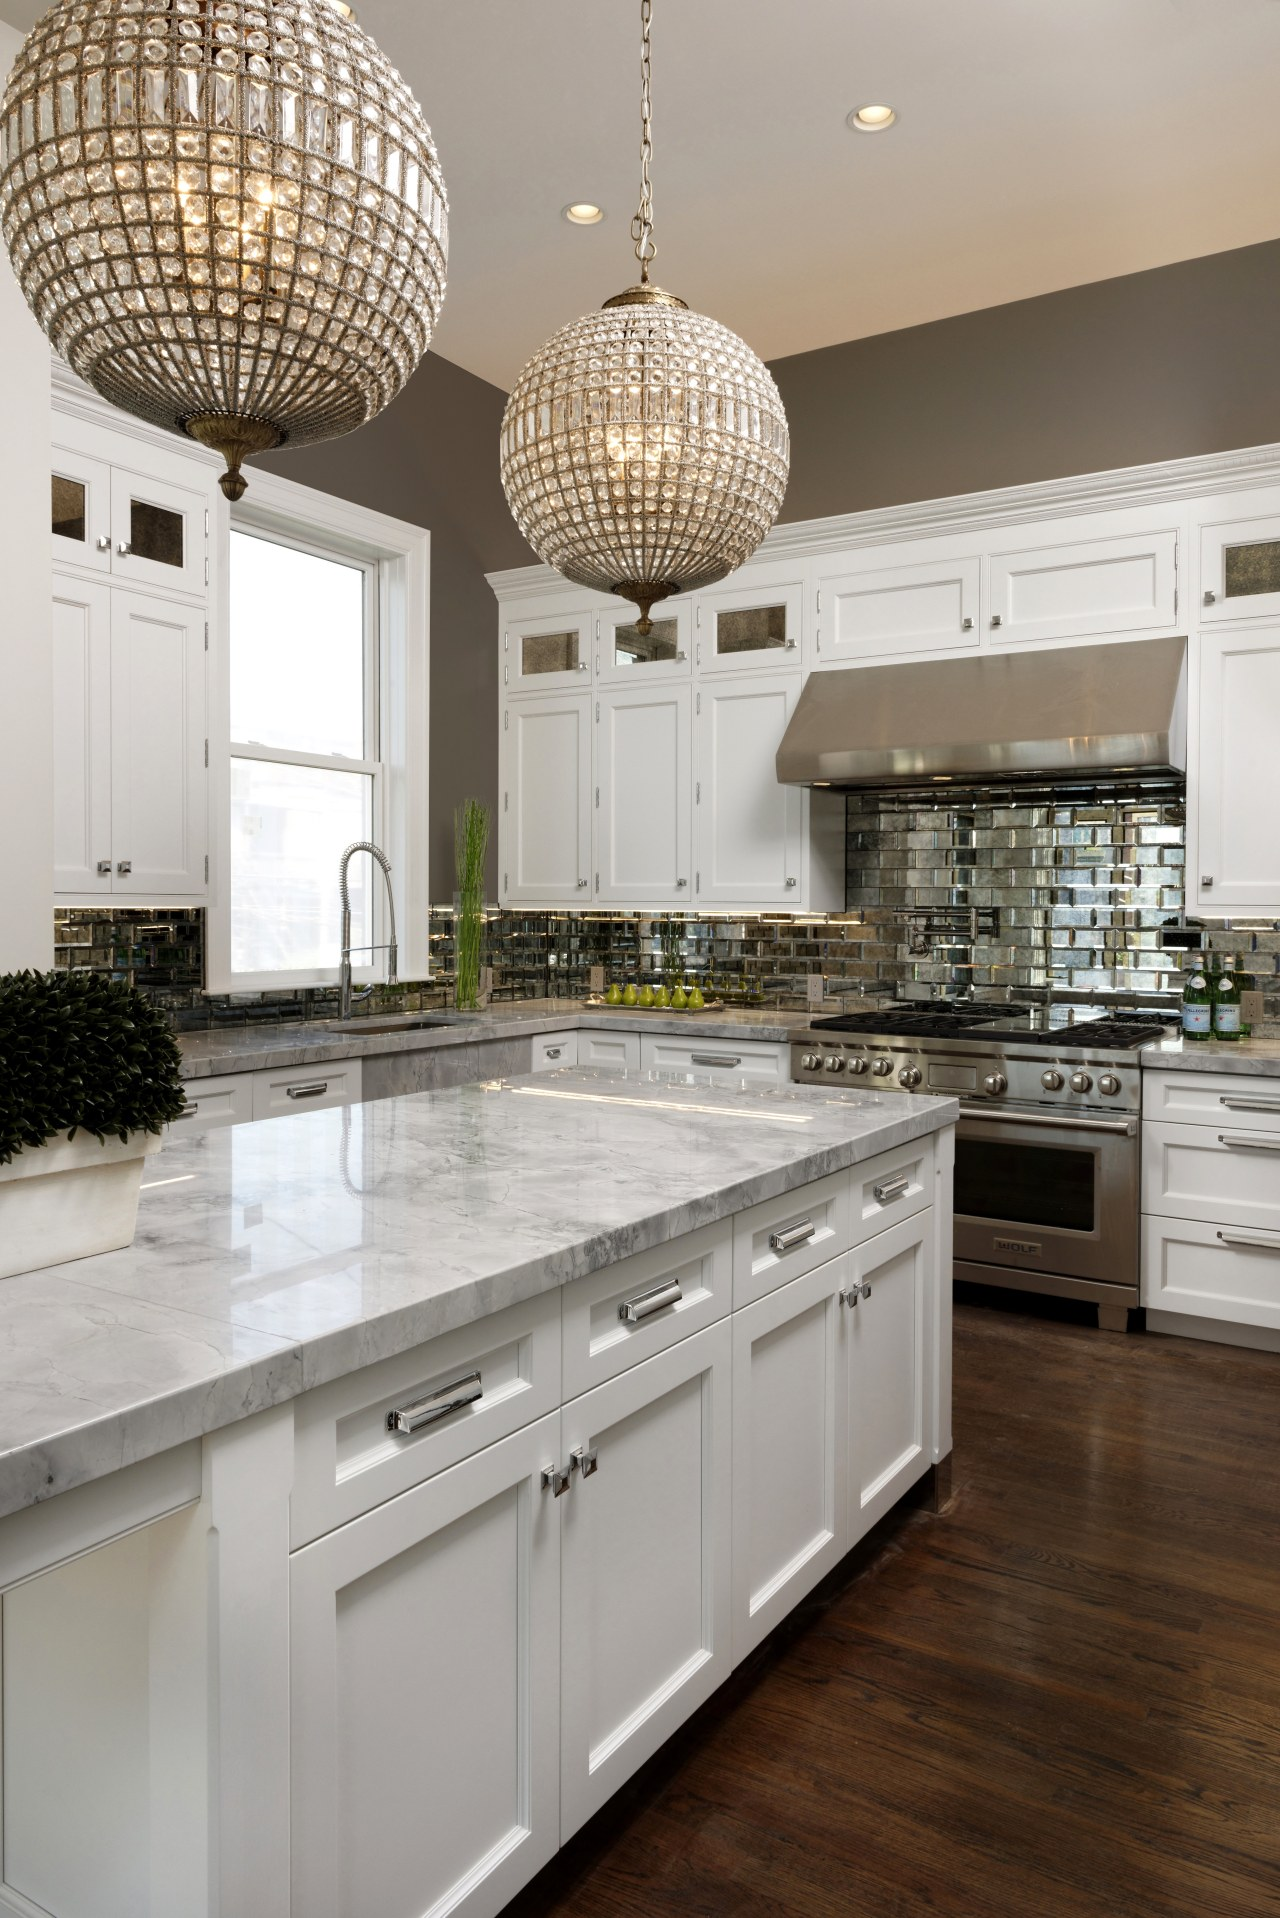 This centrally placed island includes a wealth of cabinetry, countertop, cuisine classique, interior design, kitchen, room, gray, brown